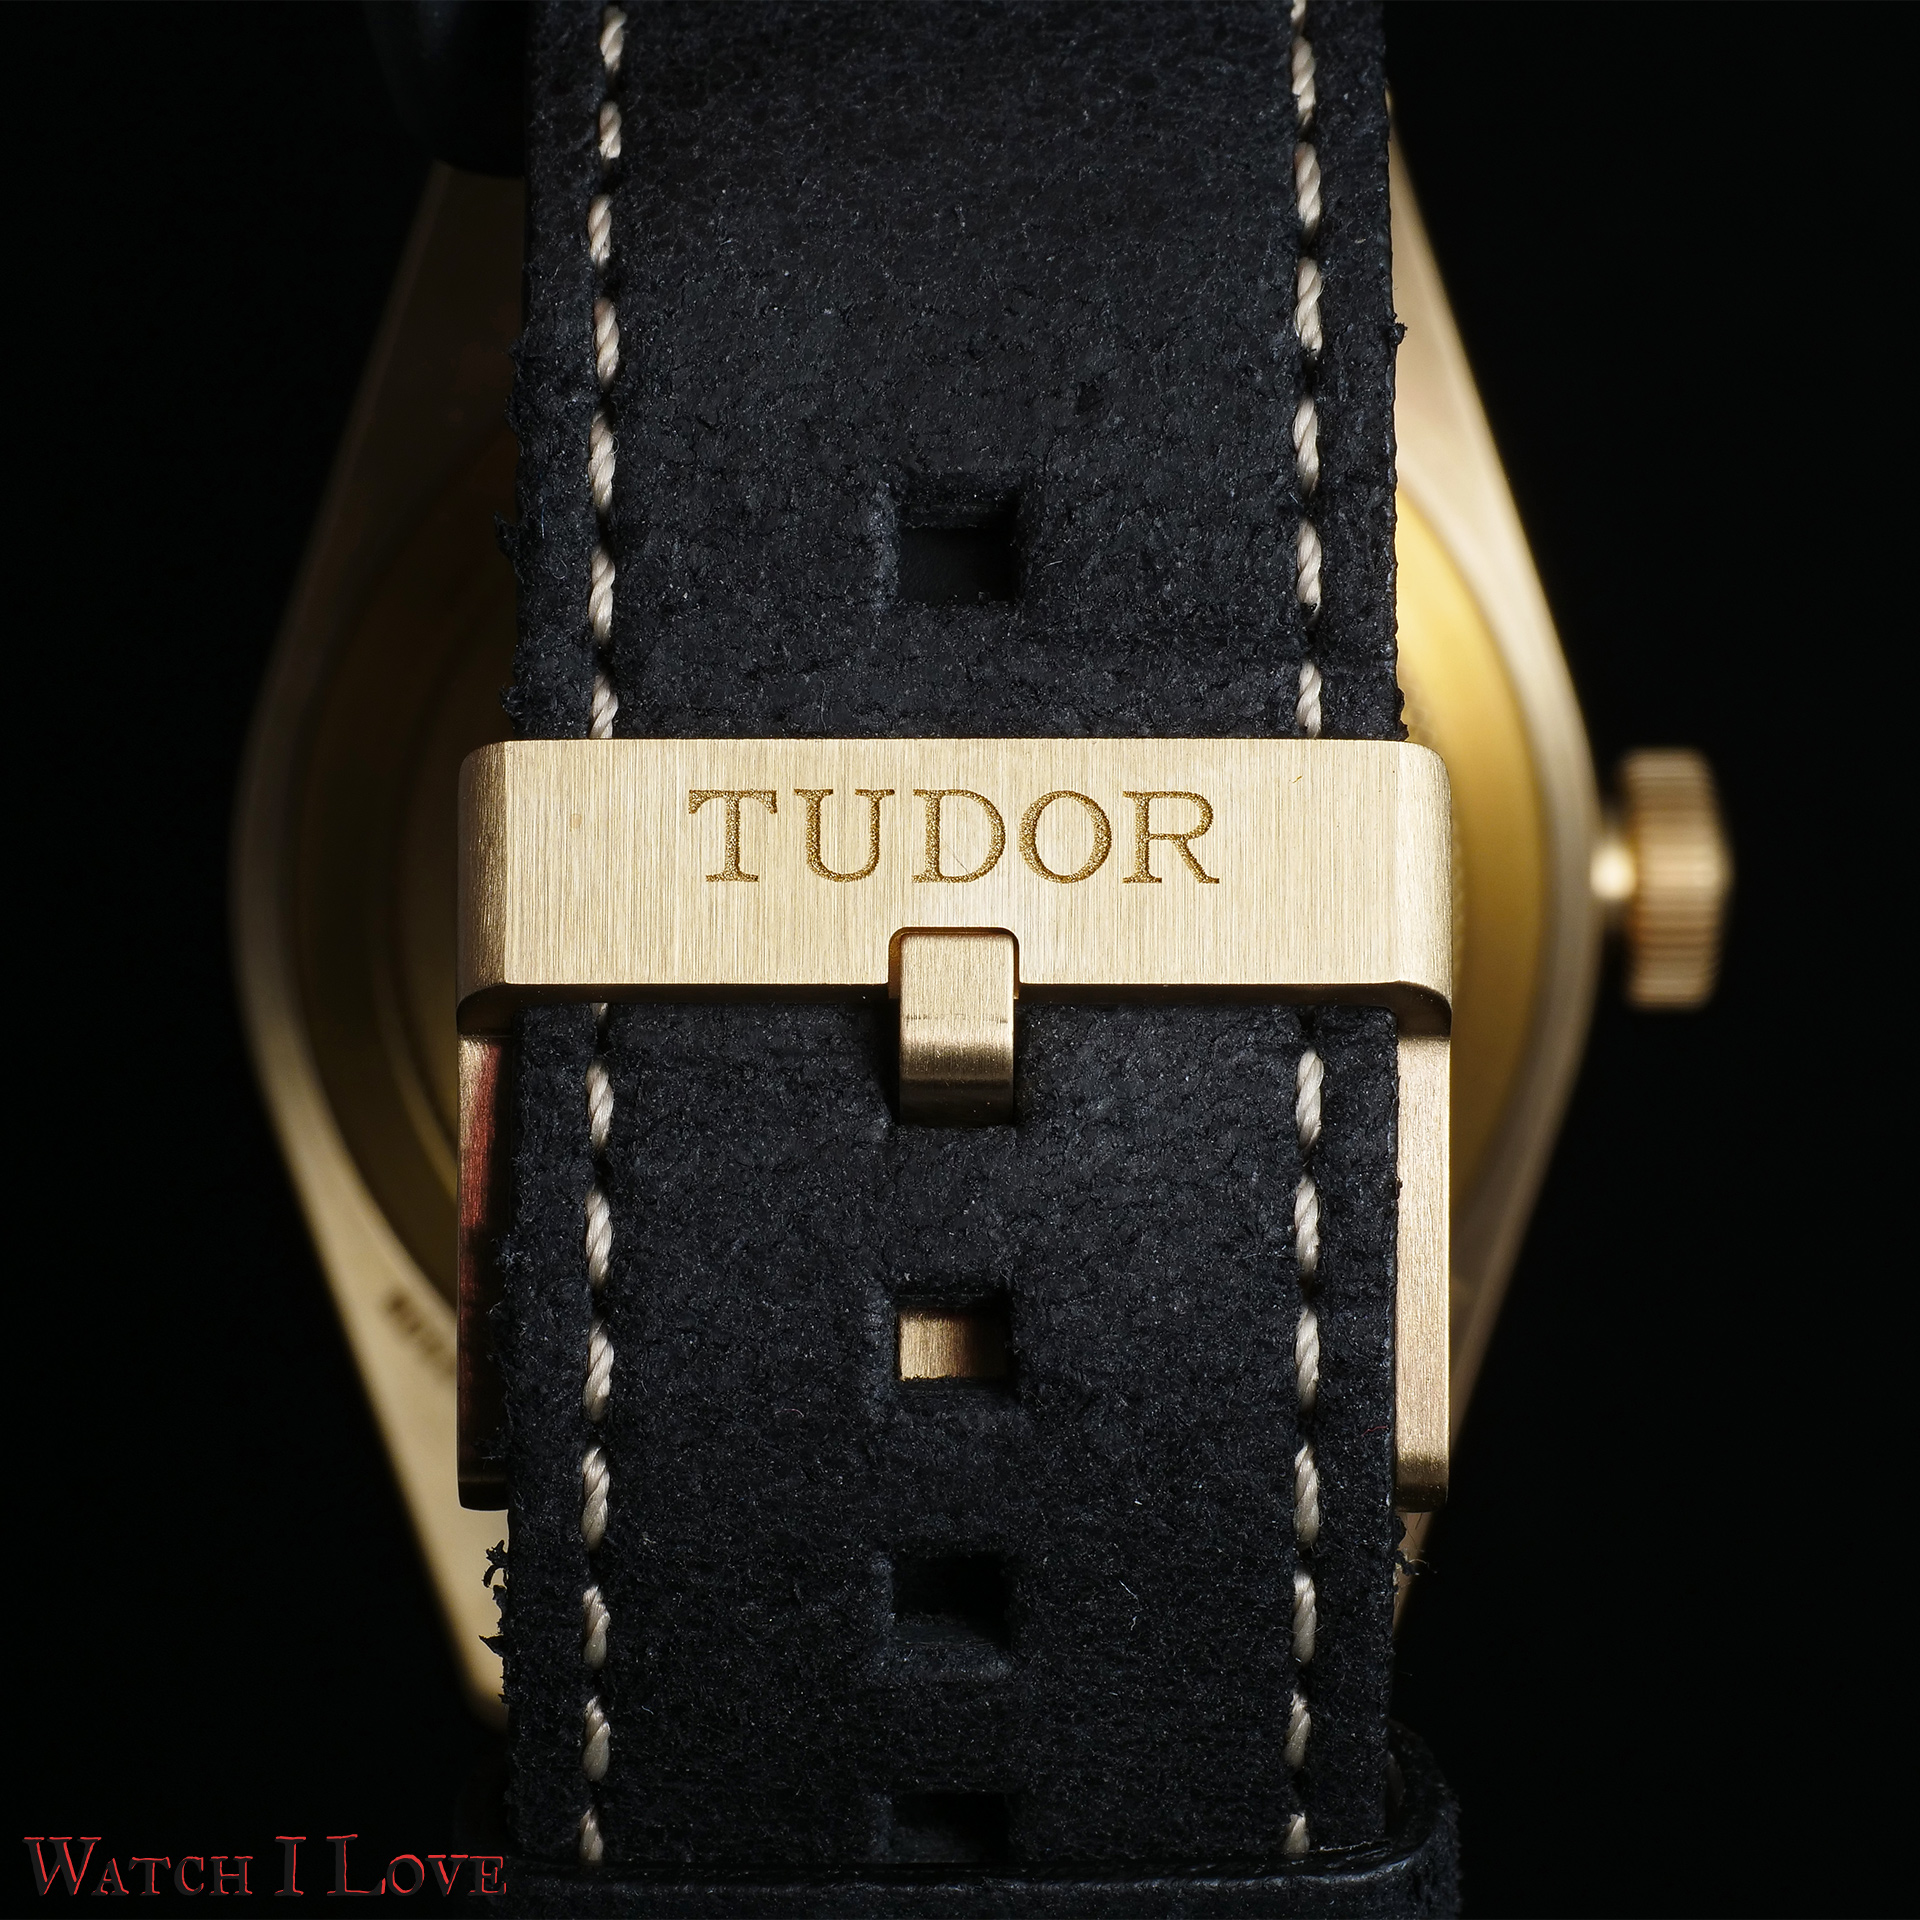 The pin buckle fitted on the leather strap